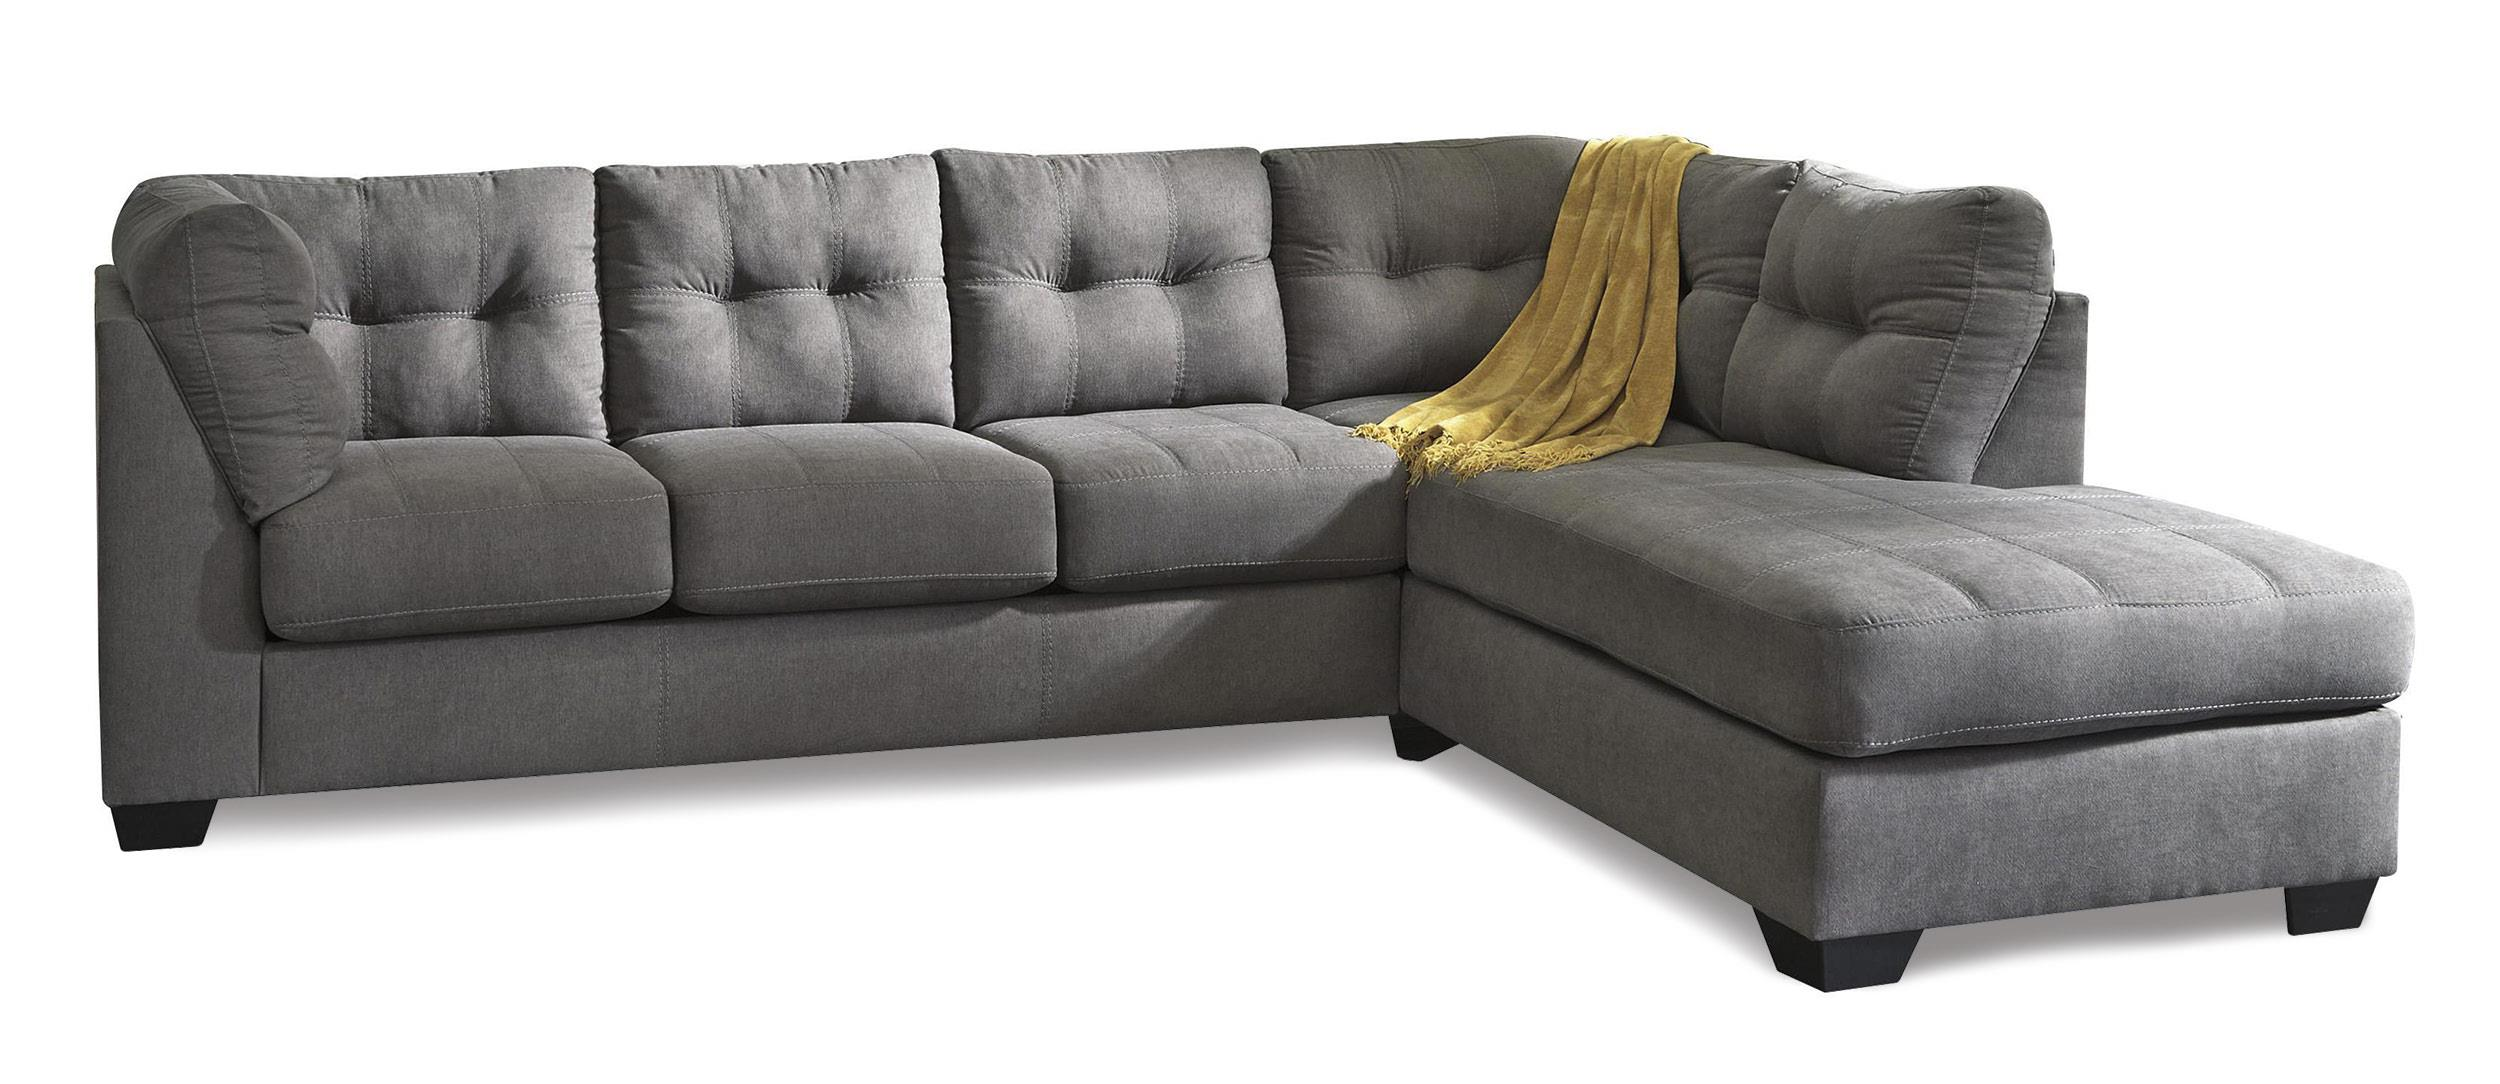 sectional ohio sofa benchcraft cleveland northeast pantomine eastlake collections direct right mentor item with cuddler factory westlake medina piece